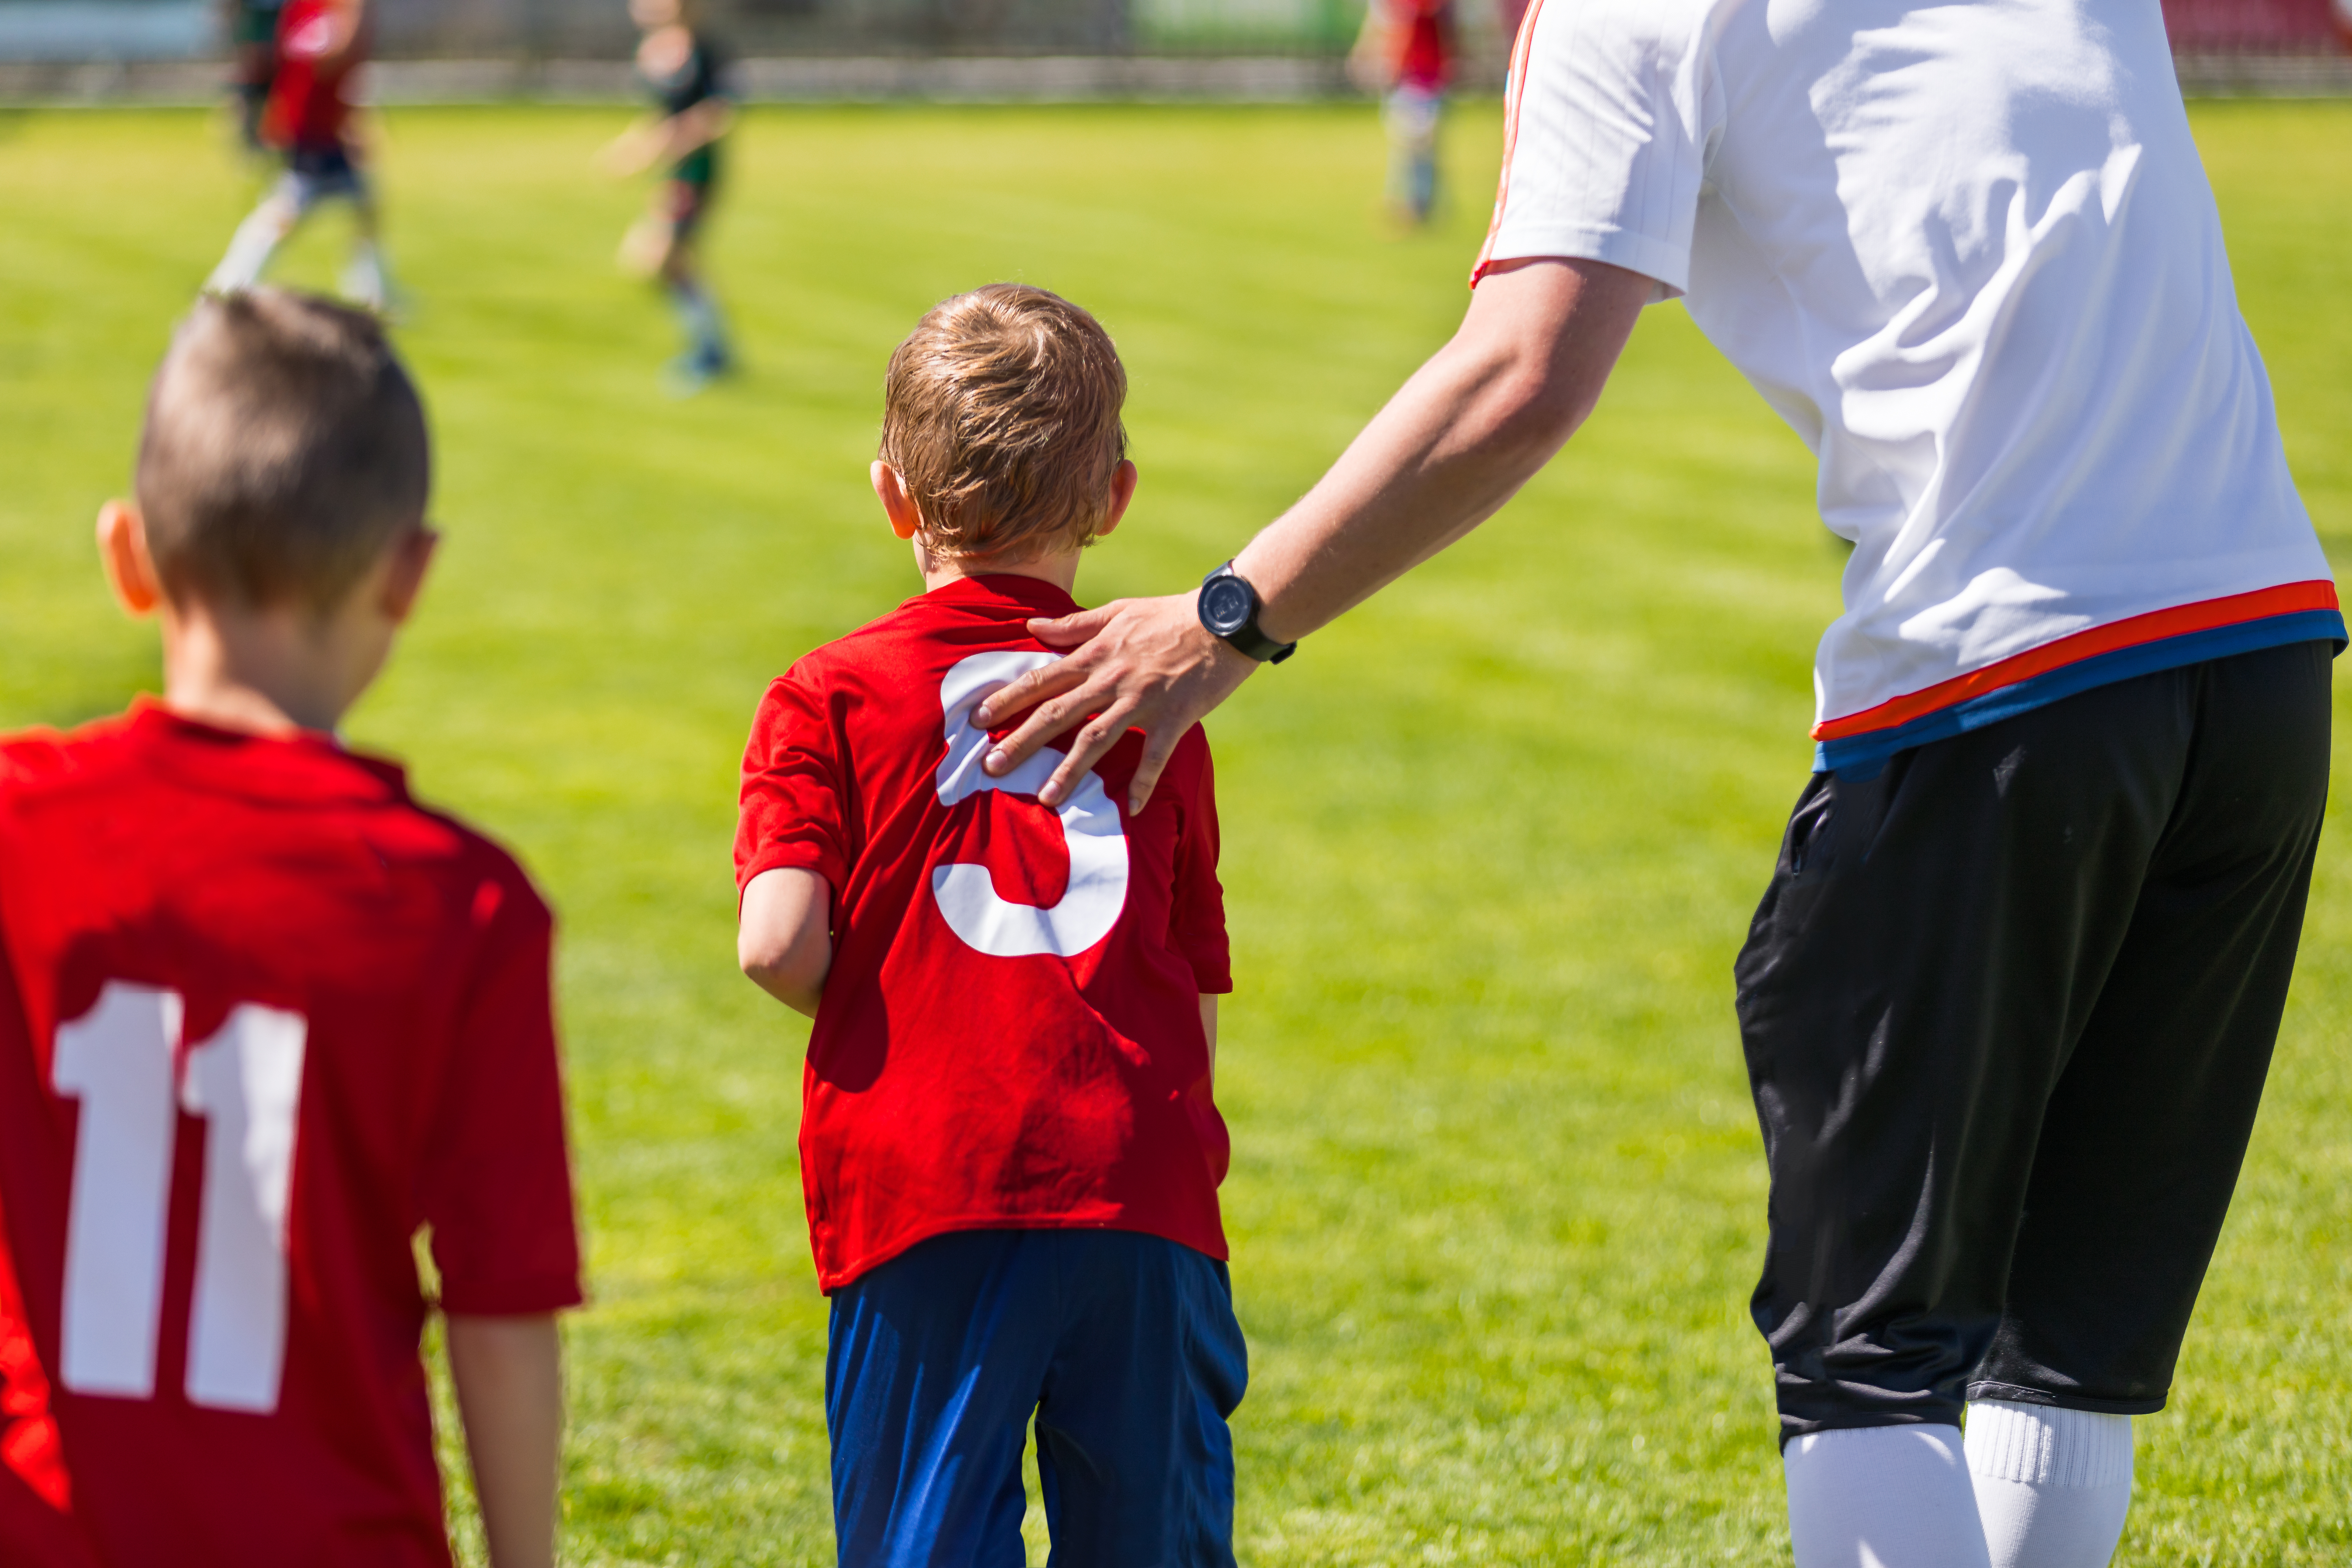 Article- 2 soccer players and coach